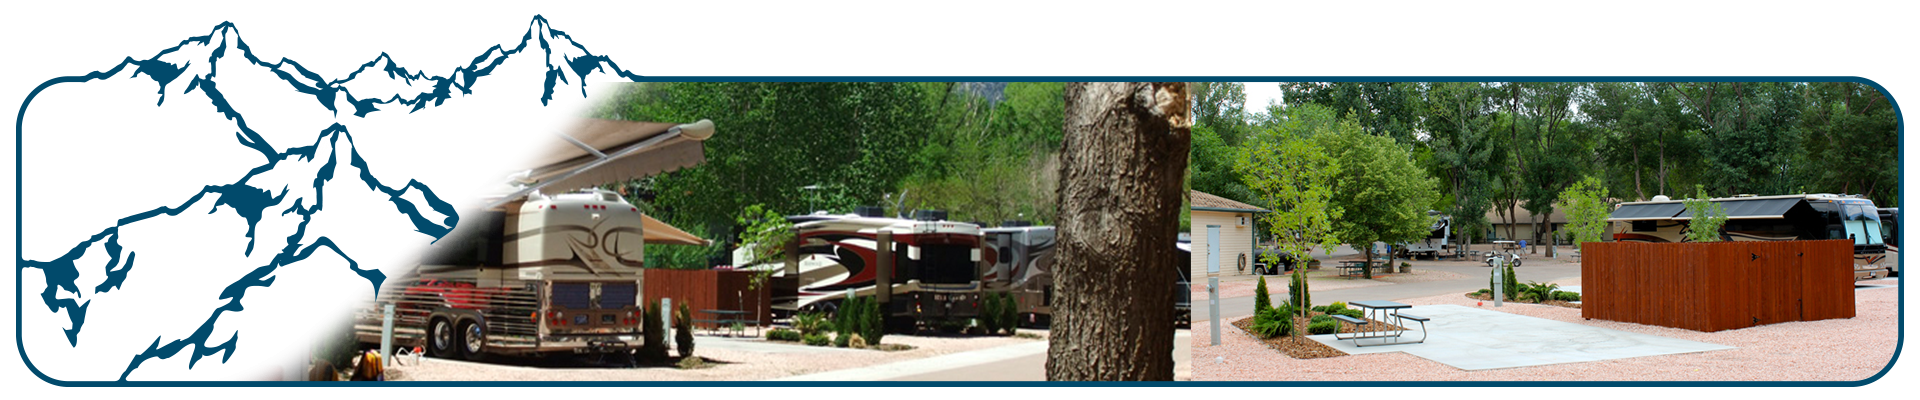 Stay over at the Garden of the Gods RV Resort.